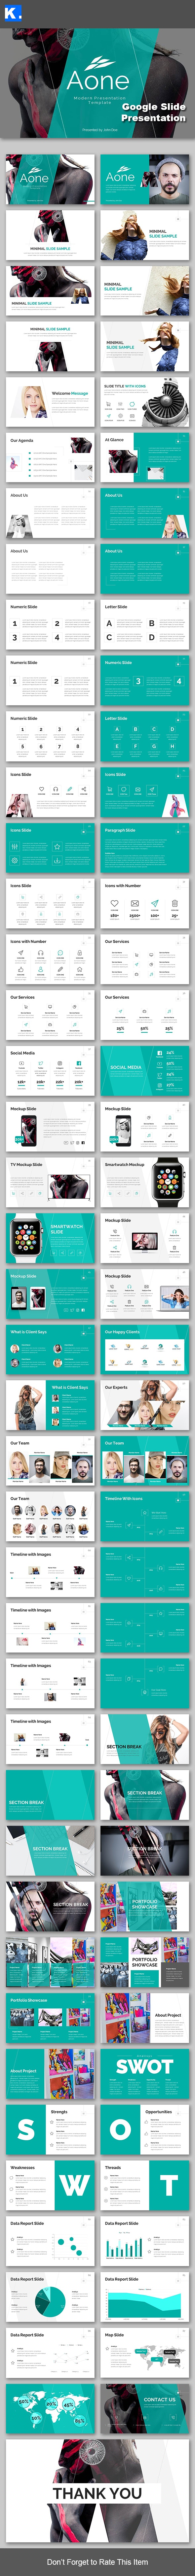 Aone - Google Slide Presentation Template - Google Slides Presentation Templates